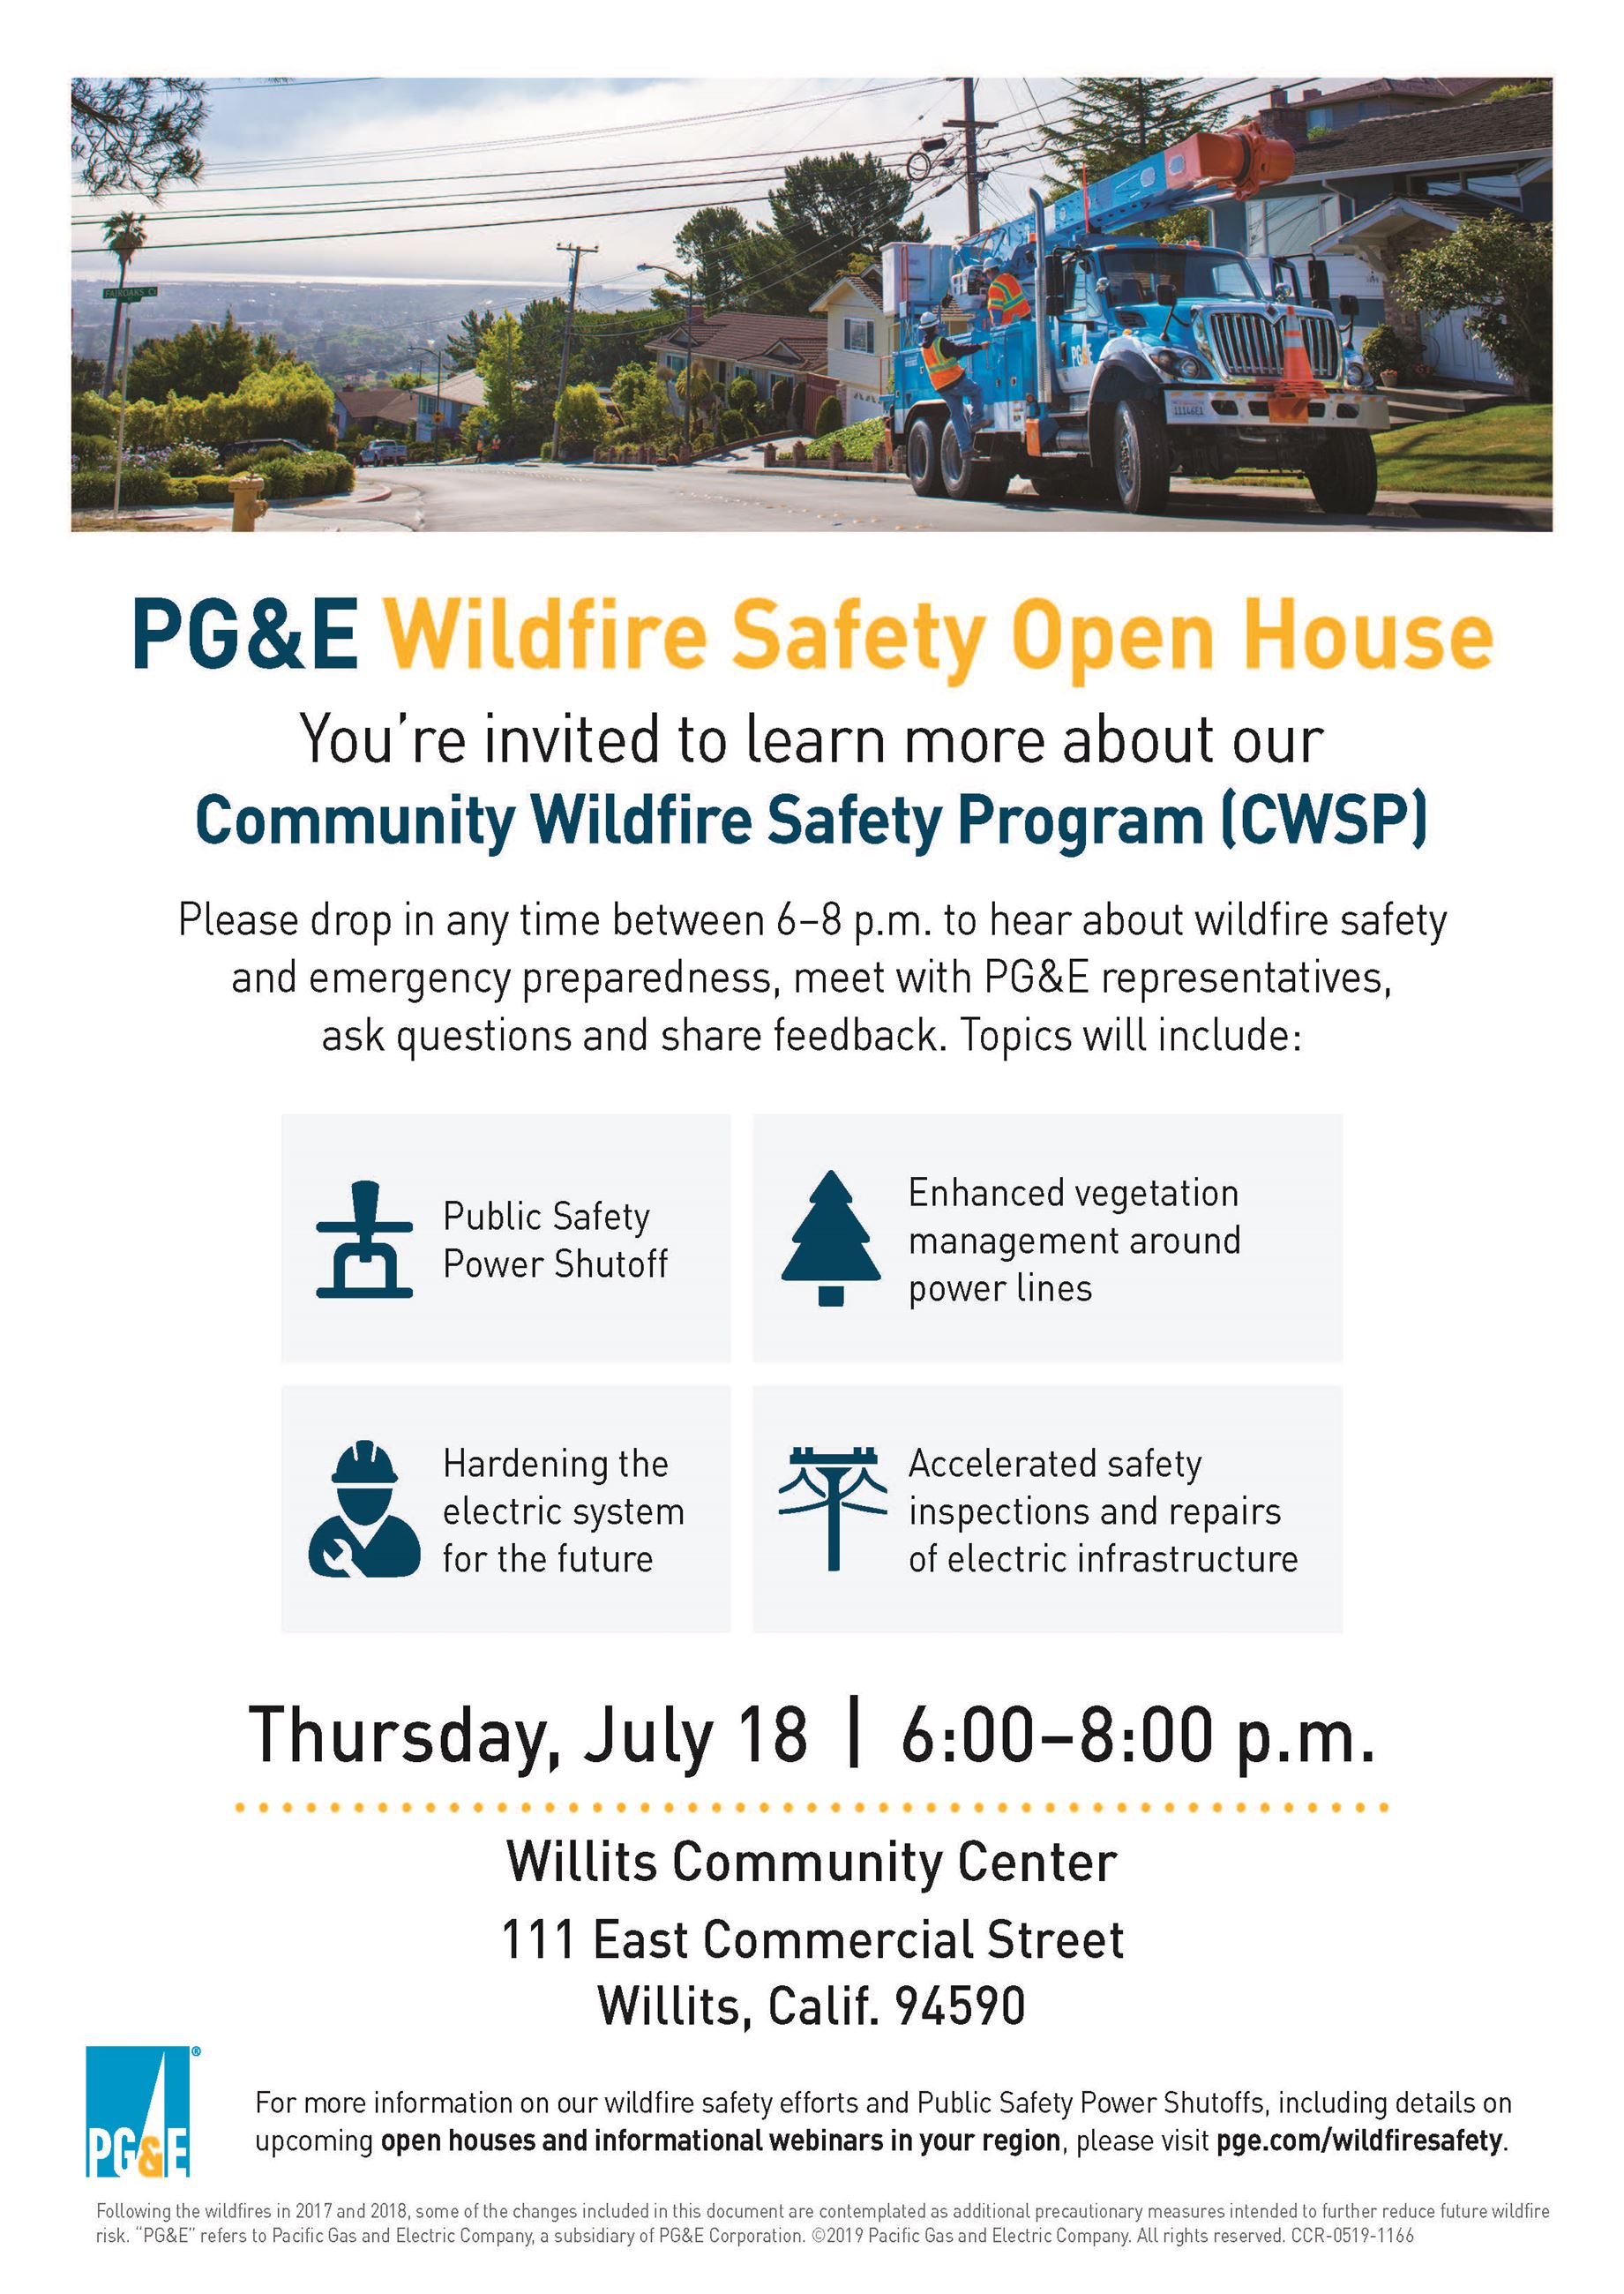 CWSP_Open_House_Invitation_20190528_Willits